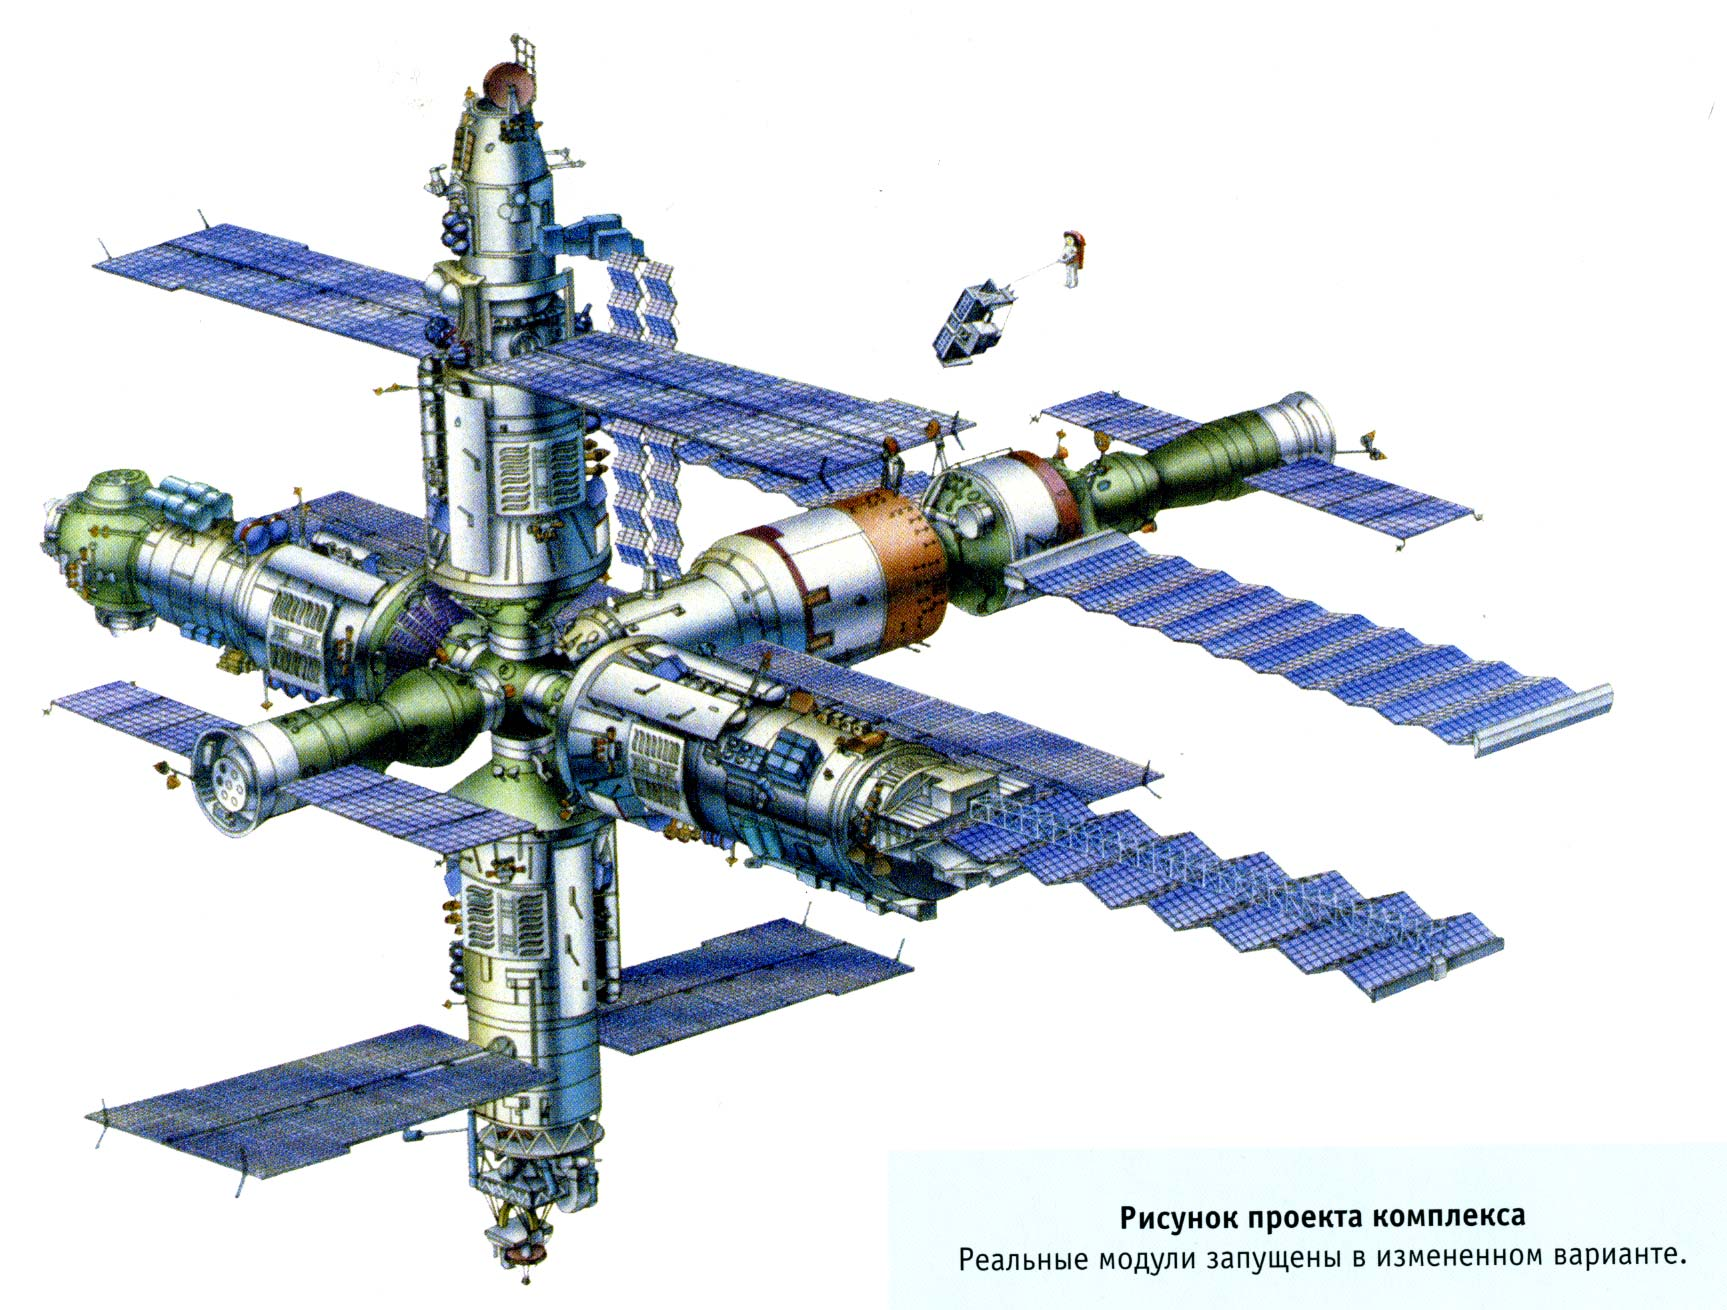 a history of the russian space programs mir station Mir: mir, soviet/russian modular space station, the core module (base block) of which was launched into earth orbit by the ussr in 1986 over the next decade additional modules were sent aloft on separate launch vehicles and attached to the core unit, creating a chronology of manned missions to mir space station.